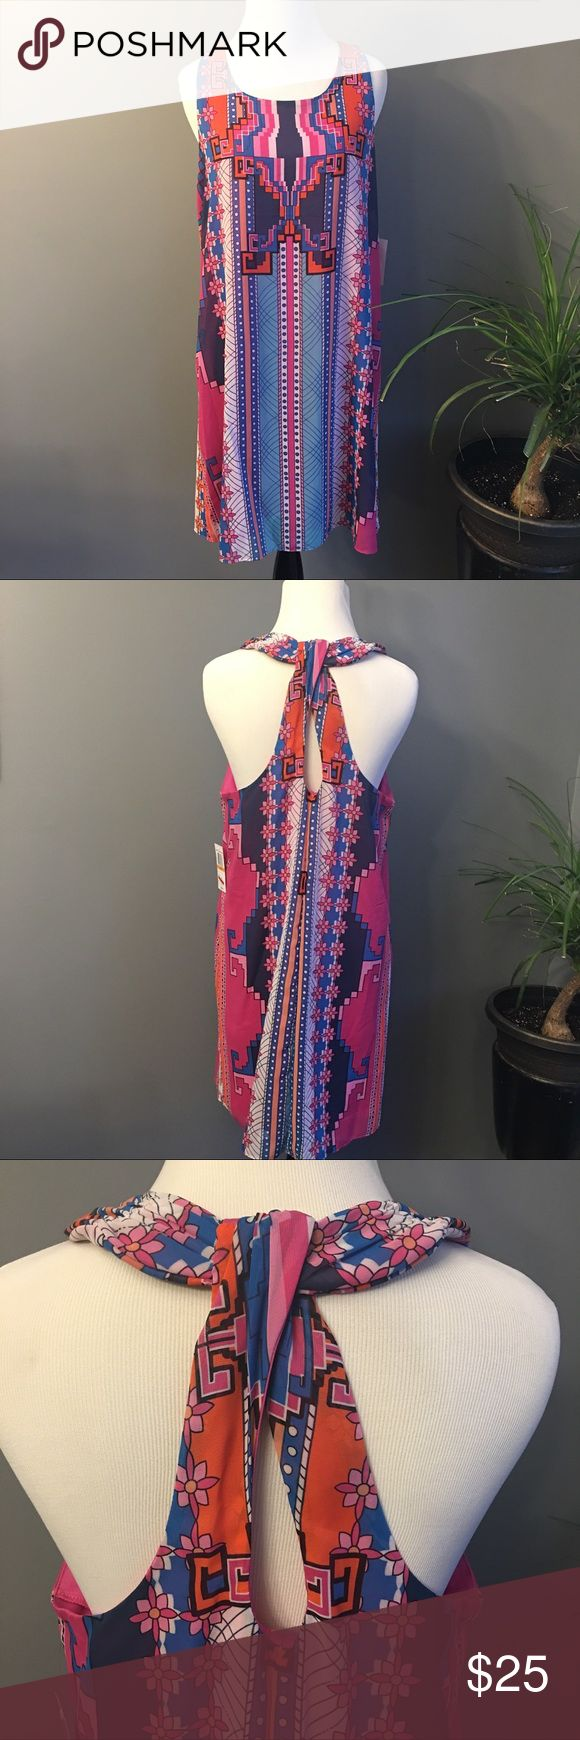 B Darlin dress New with tags B Darlin multi color dress with an adorable knotted style back. Size 7/8. Original price $39. Check out my page for more and ask about bundling to save some money. Make an offer! B Darlin Dresses Mini